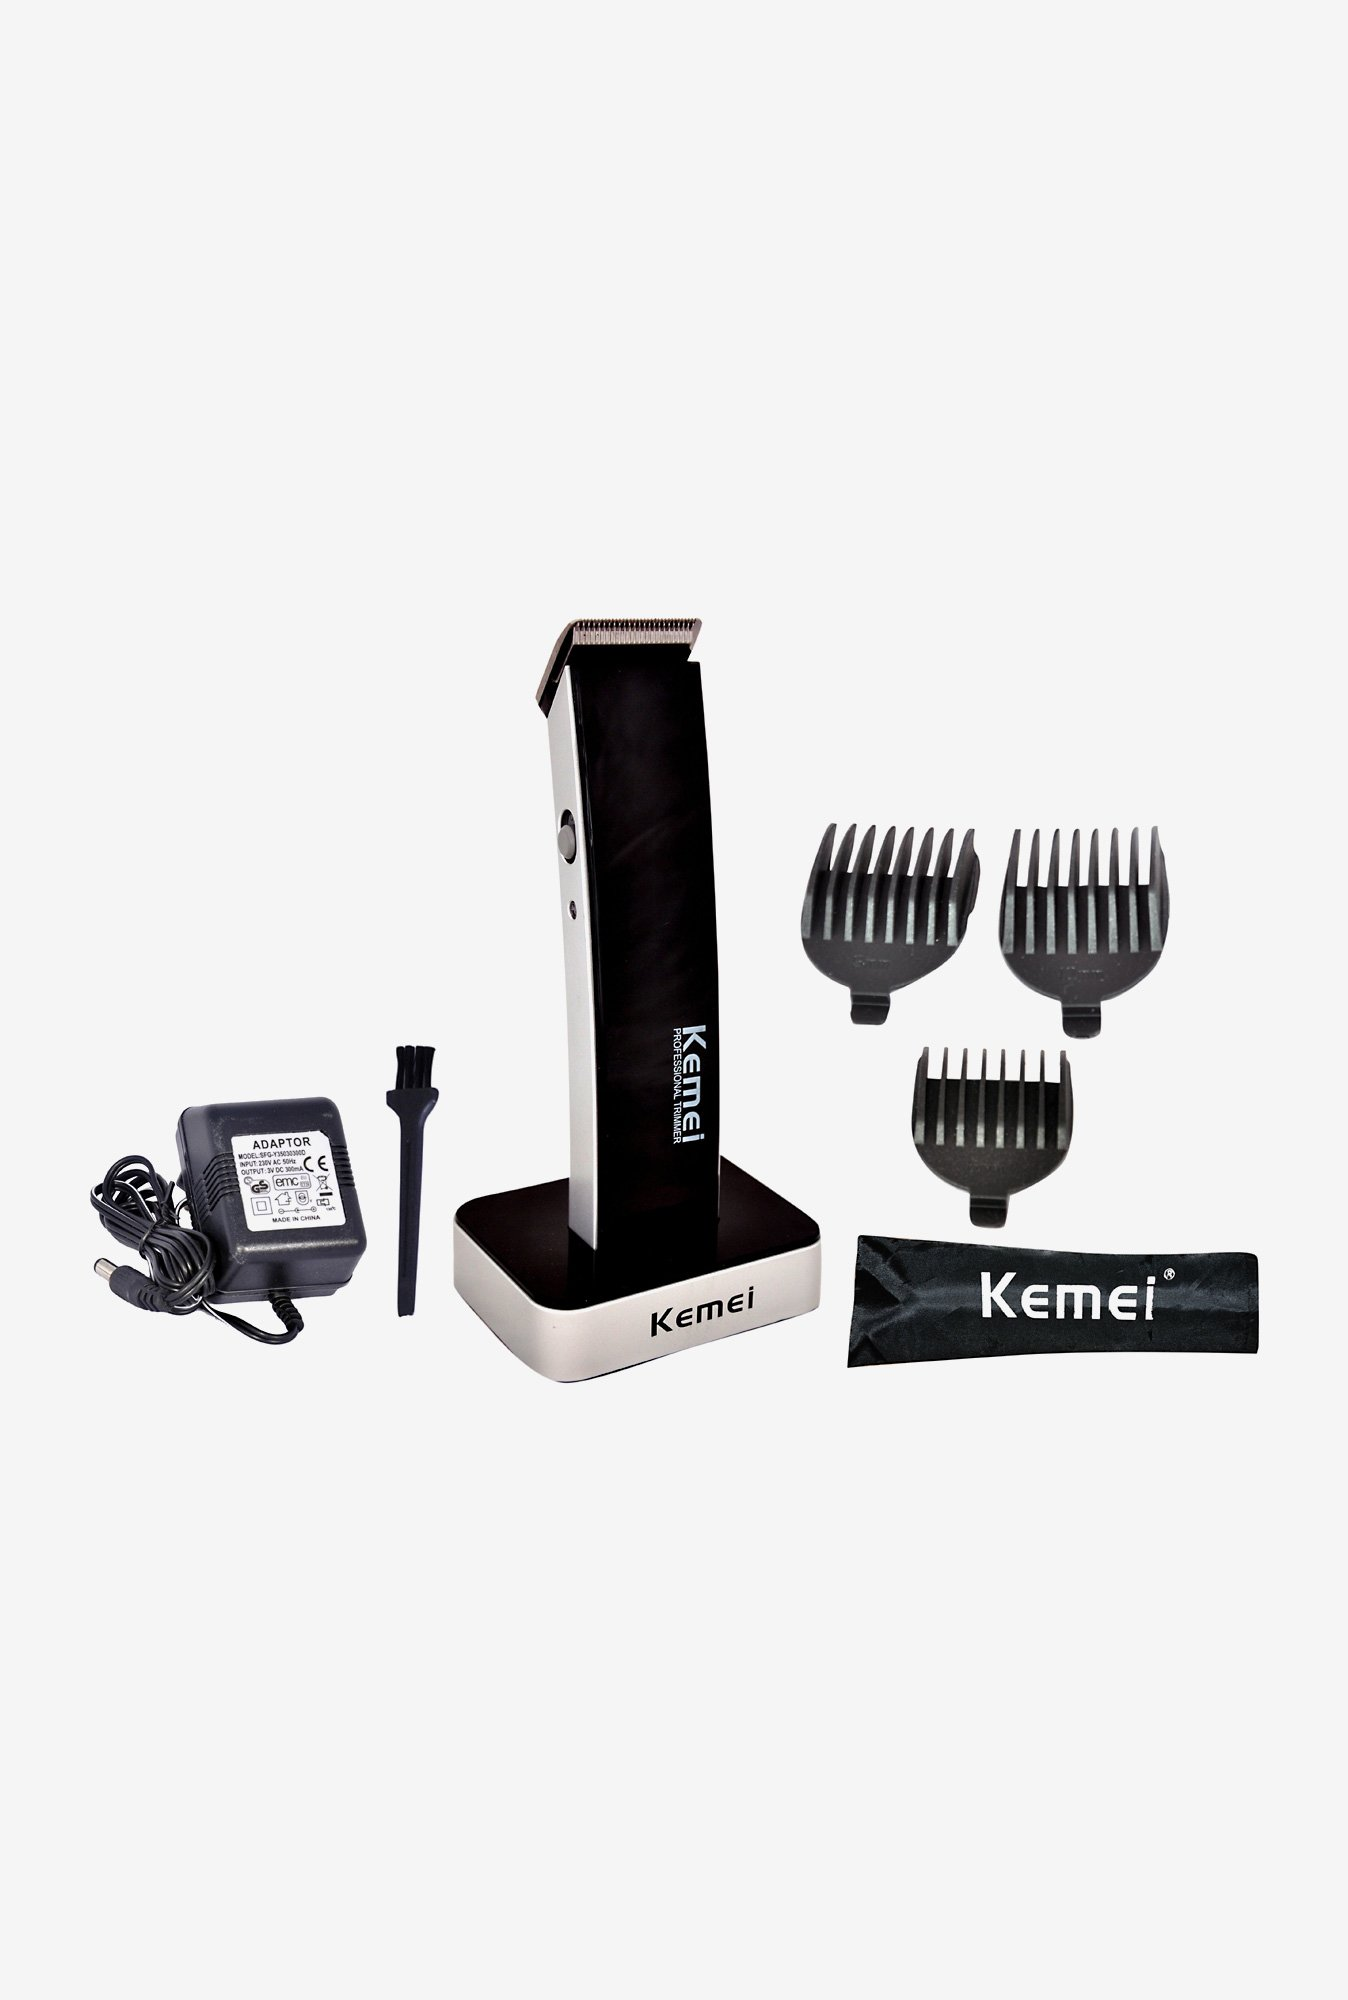 Kemei KM-619A Trimmer for Men (White & Black)